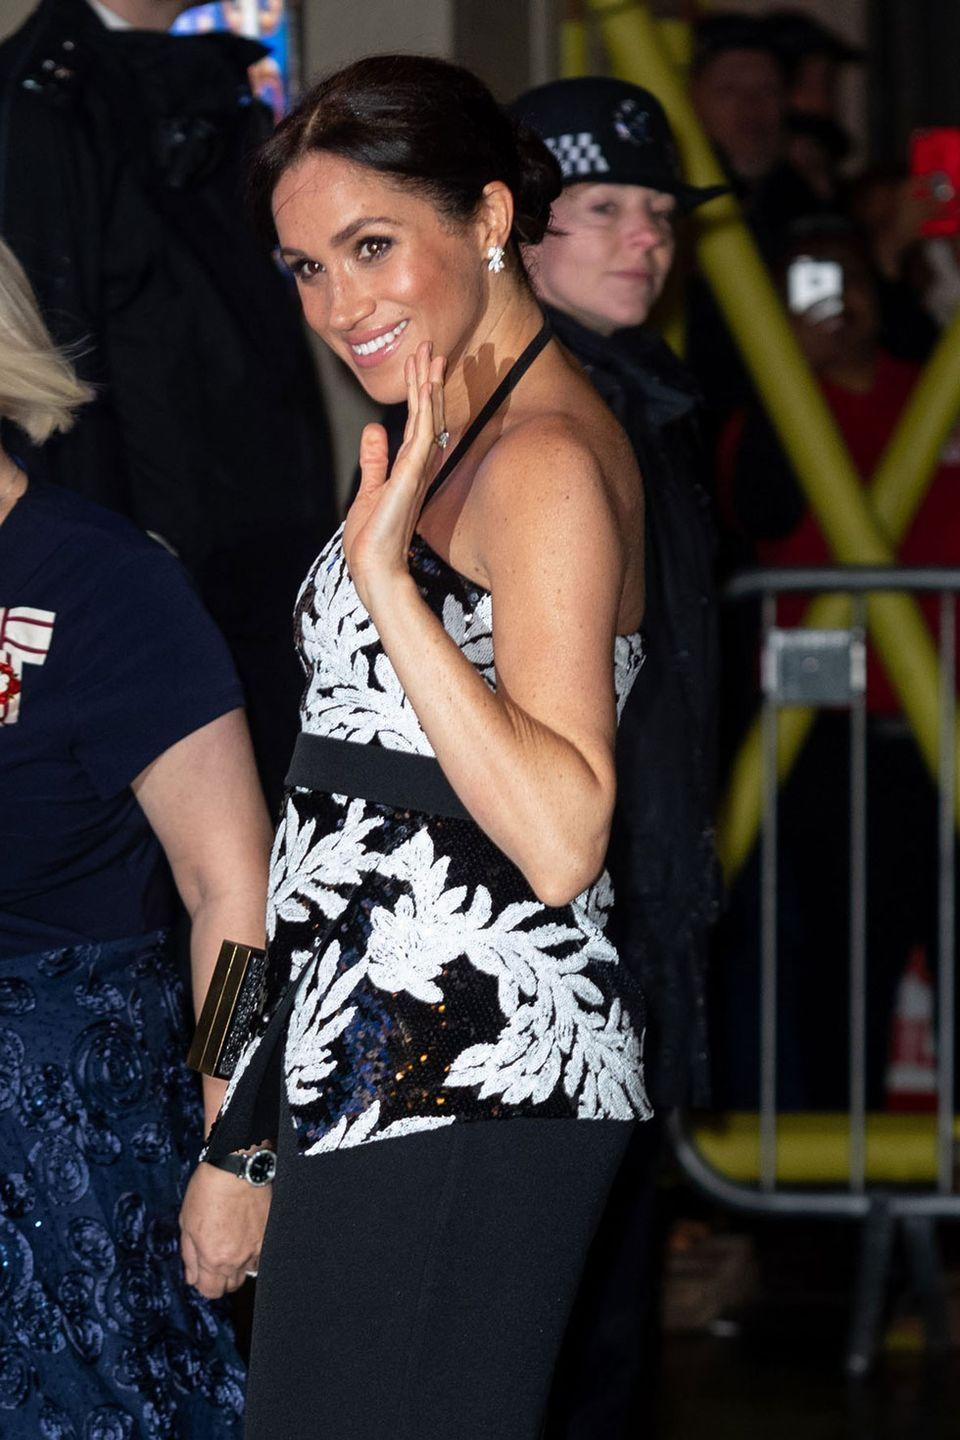 <p>On the night of Prince Harry and Meghan Markle's six-month wedding anniversary, the pair headed to the Royal Variety Performance at The London Palladium.</p><p>For her first time at the event, Meghan showed off her blossoming bump while wearing a beautiful sequin monochrome halter-neck top and skirt by Safiyaa. Oh, and she's still glowing!</p>